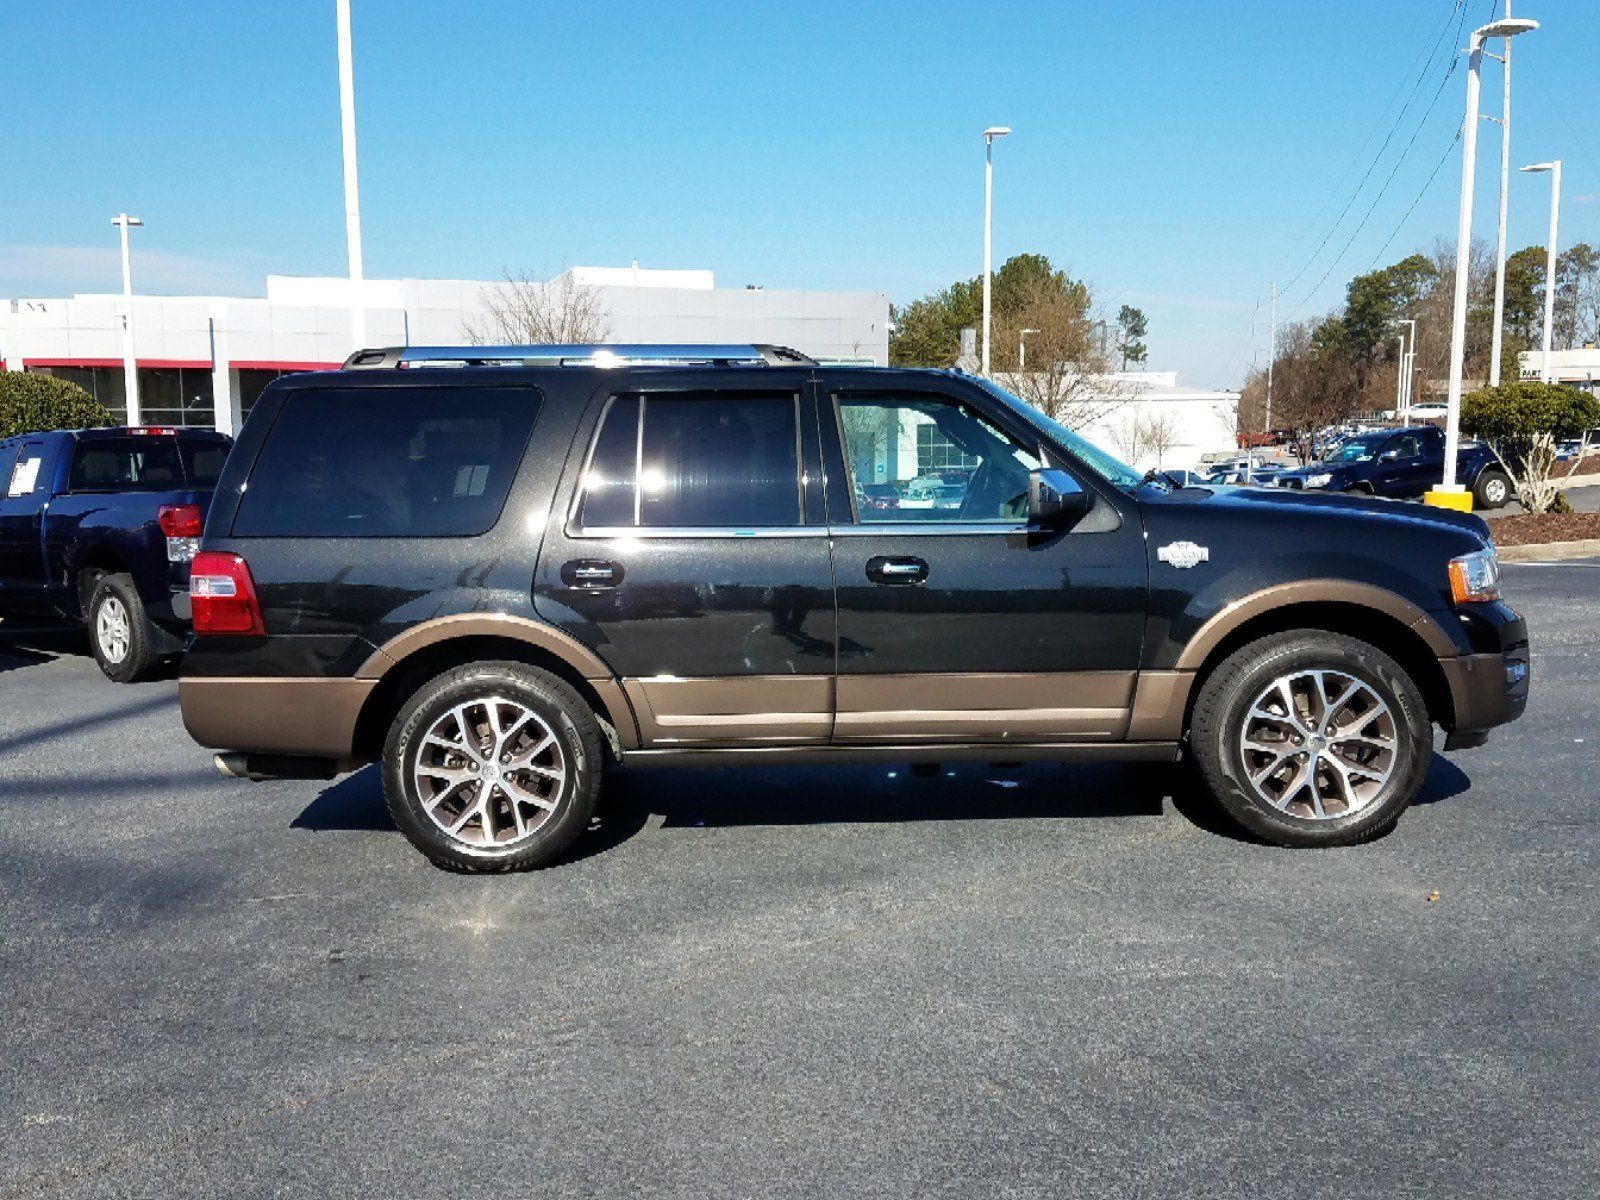 Lovely 1998 Ford Expedition Tires Ford Expedition 2017 Ford